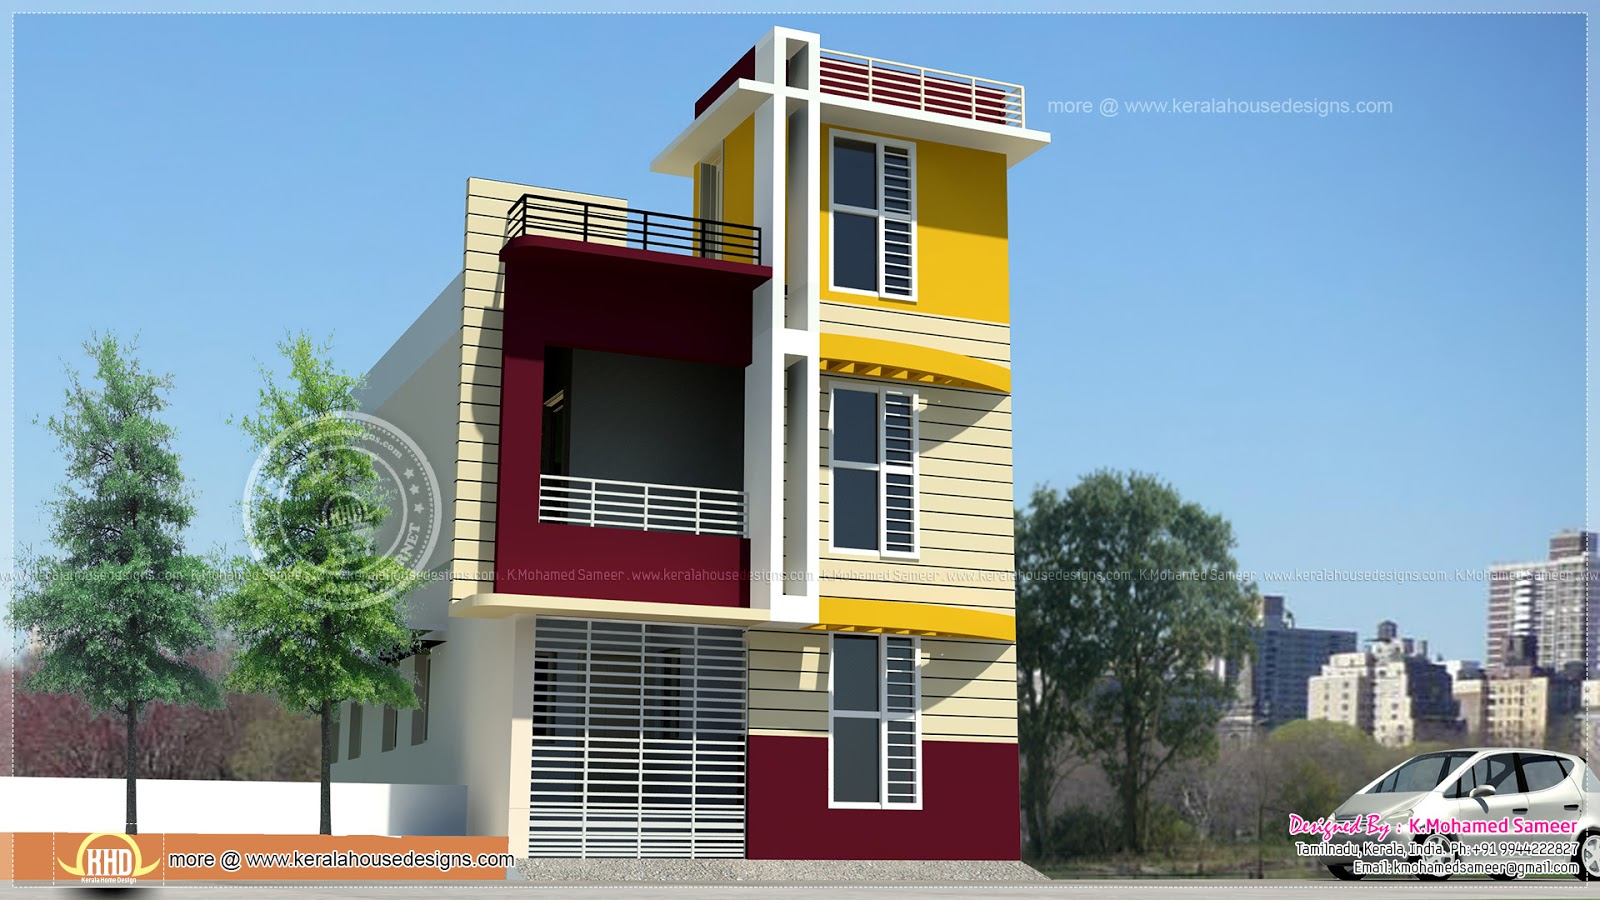 Tamilnadu style 3 storey house elevation kerala home for Tamilnadu house models